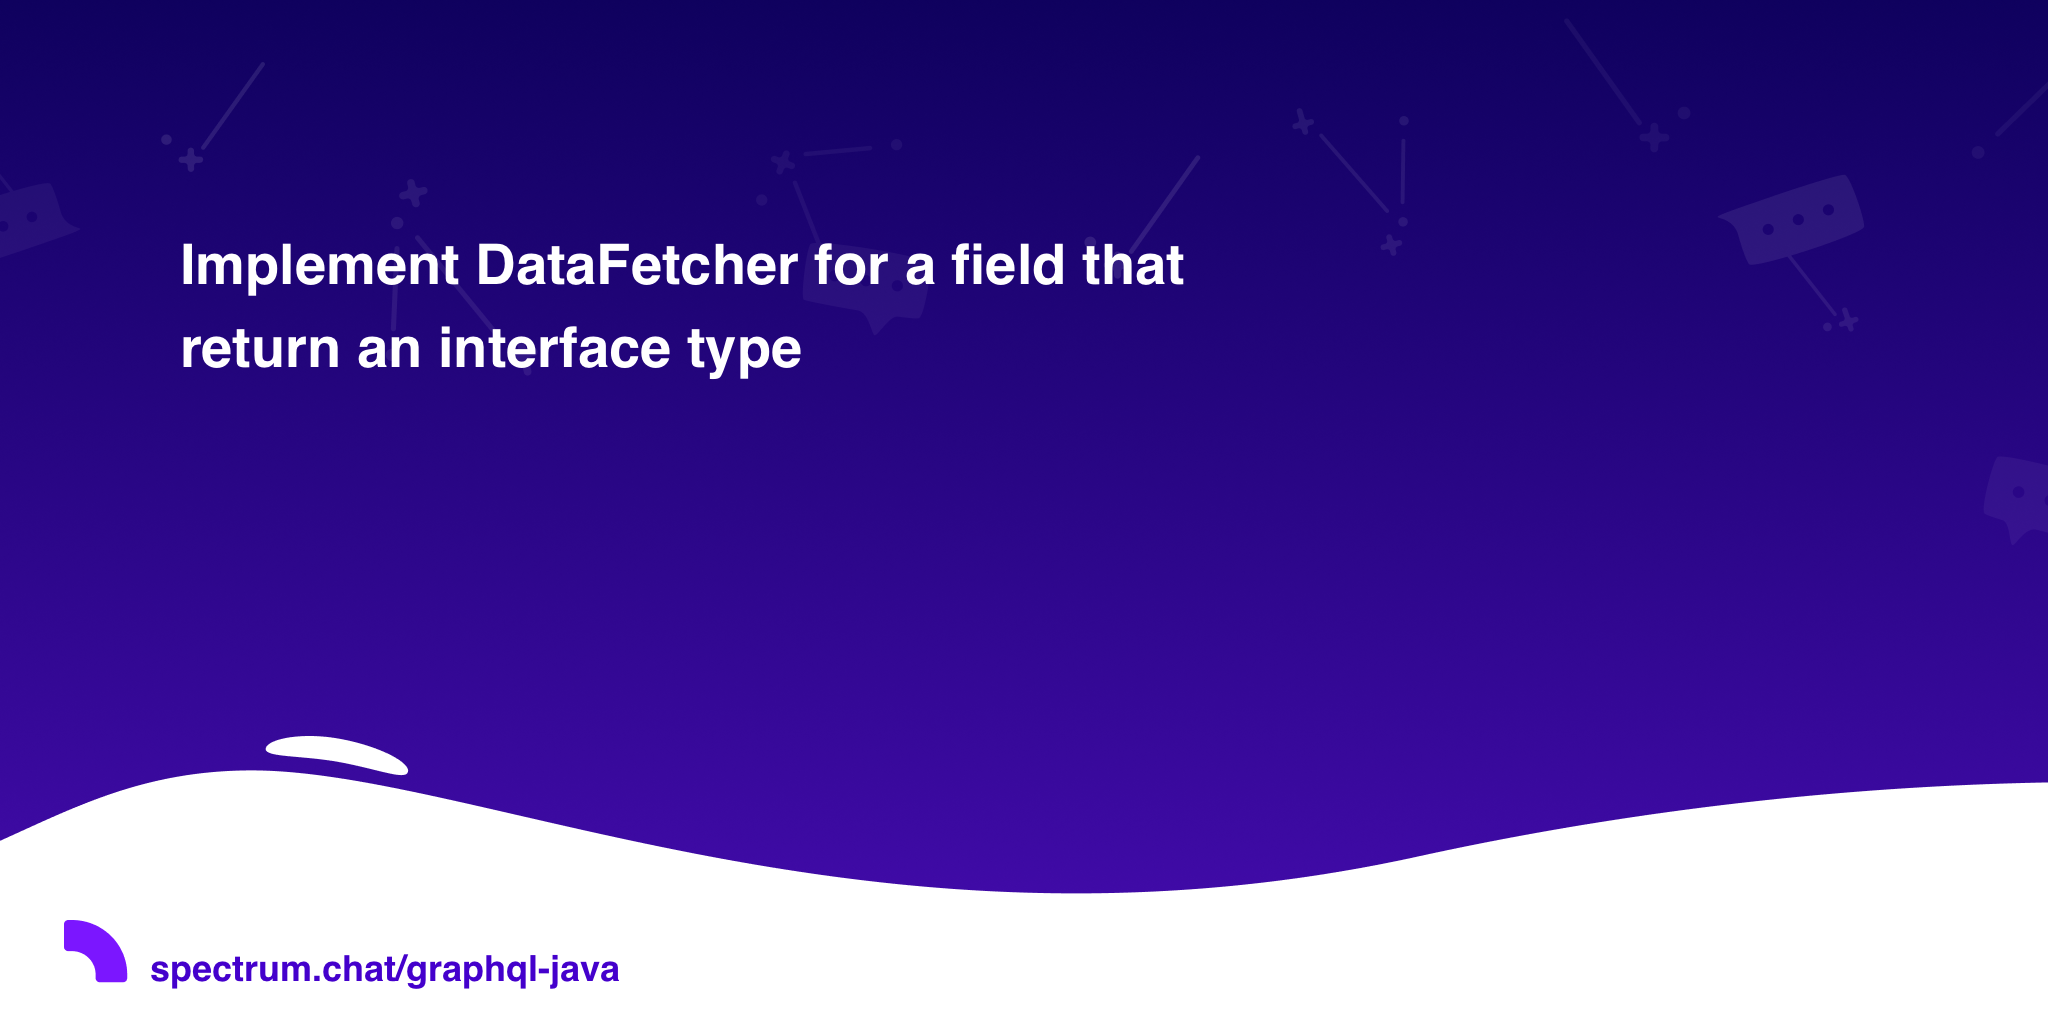 Implement DataFetcher for a field that return an interface type